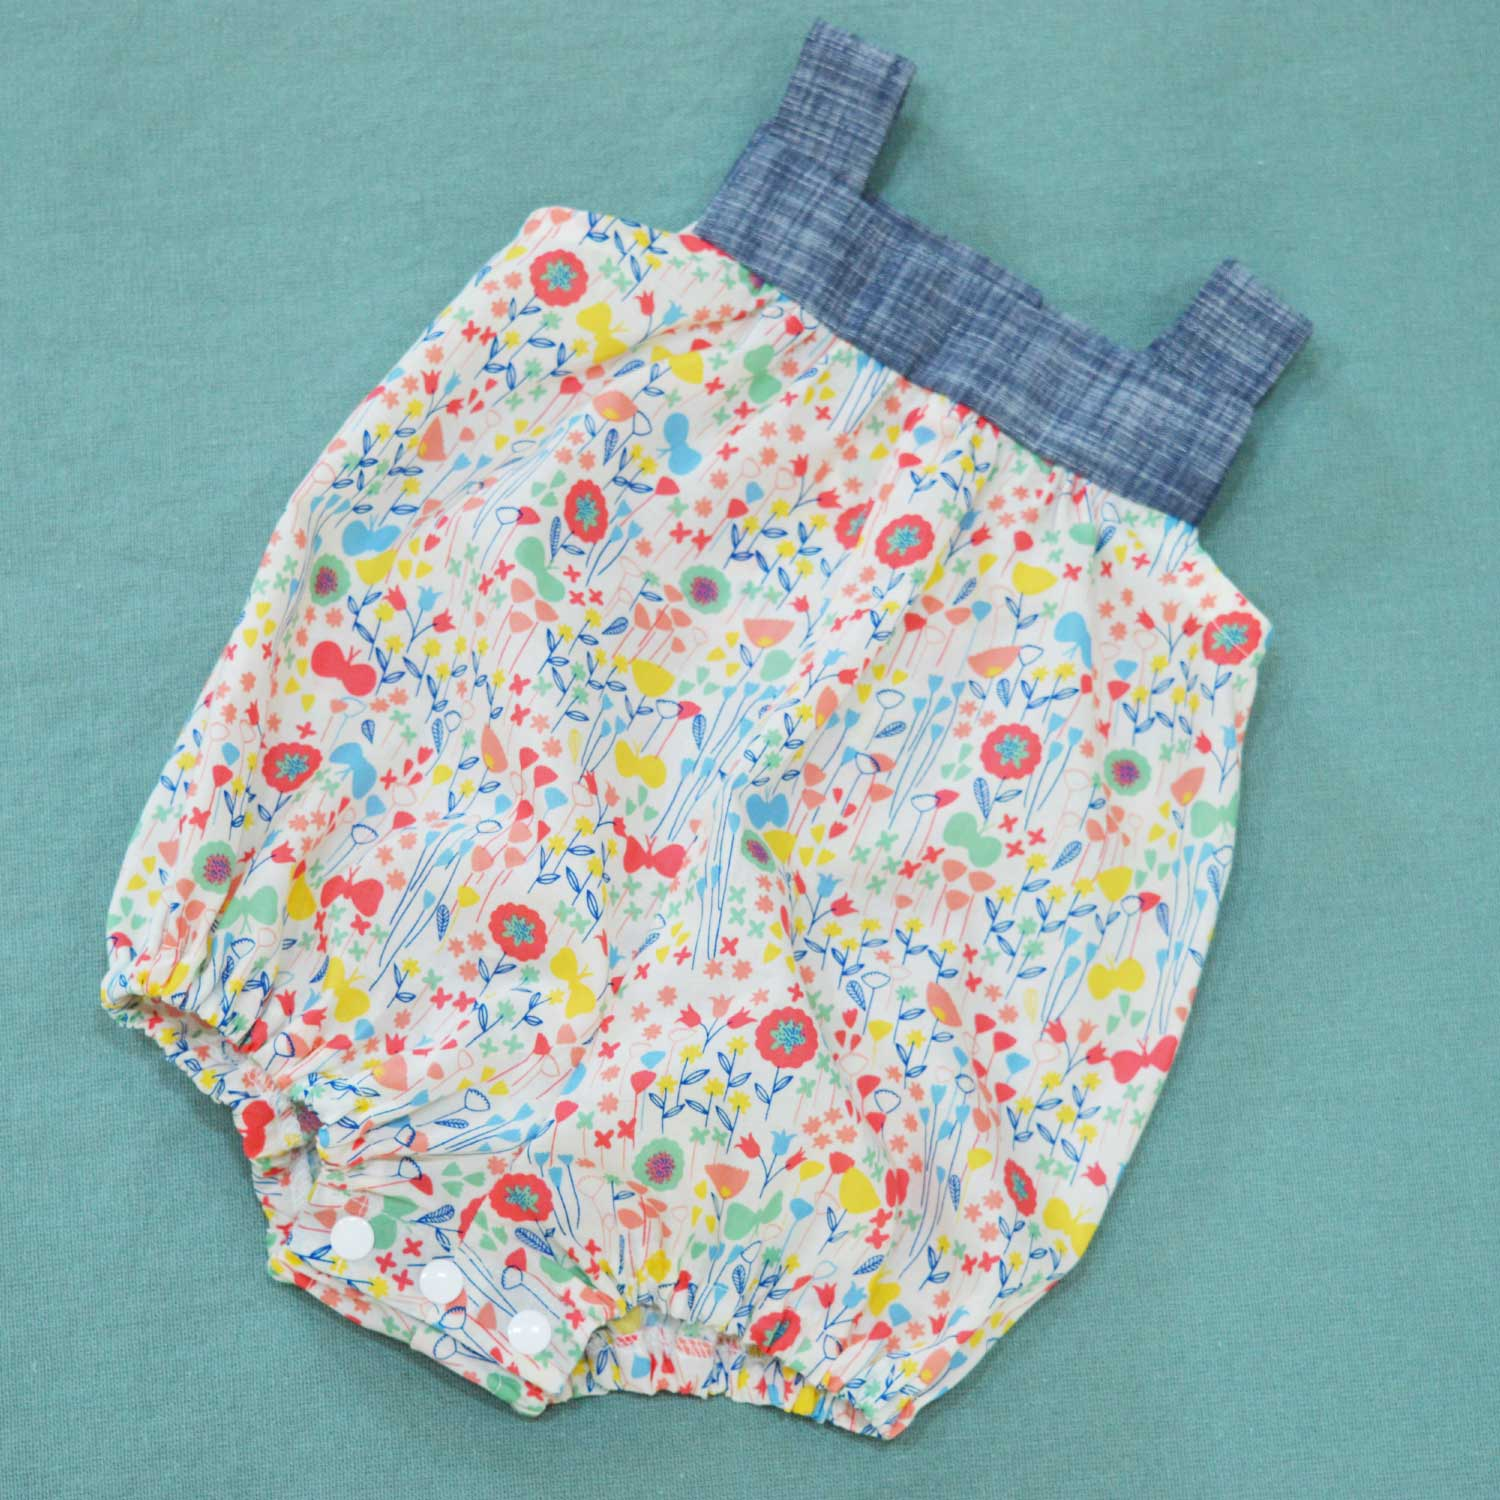 Holm Sown: Kwik Sew K3776 Baby Romper in London Calling Cotton Lawn - front view